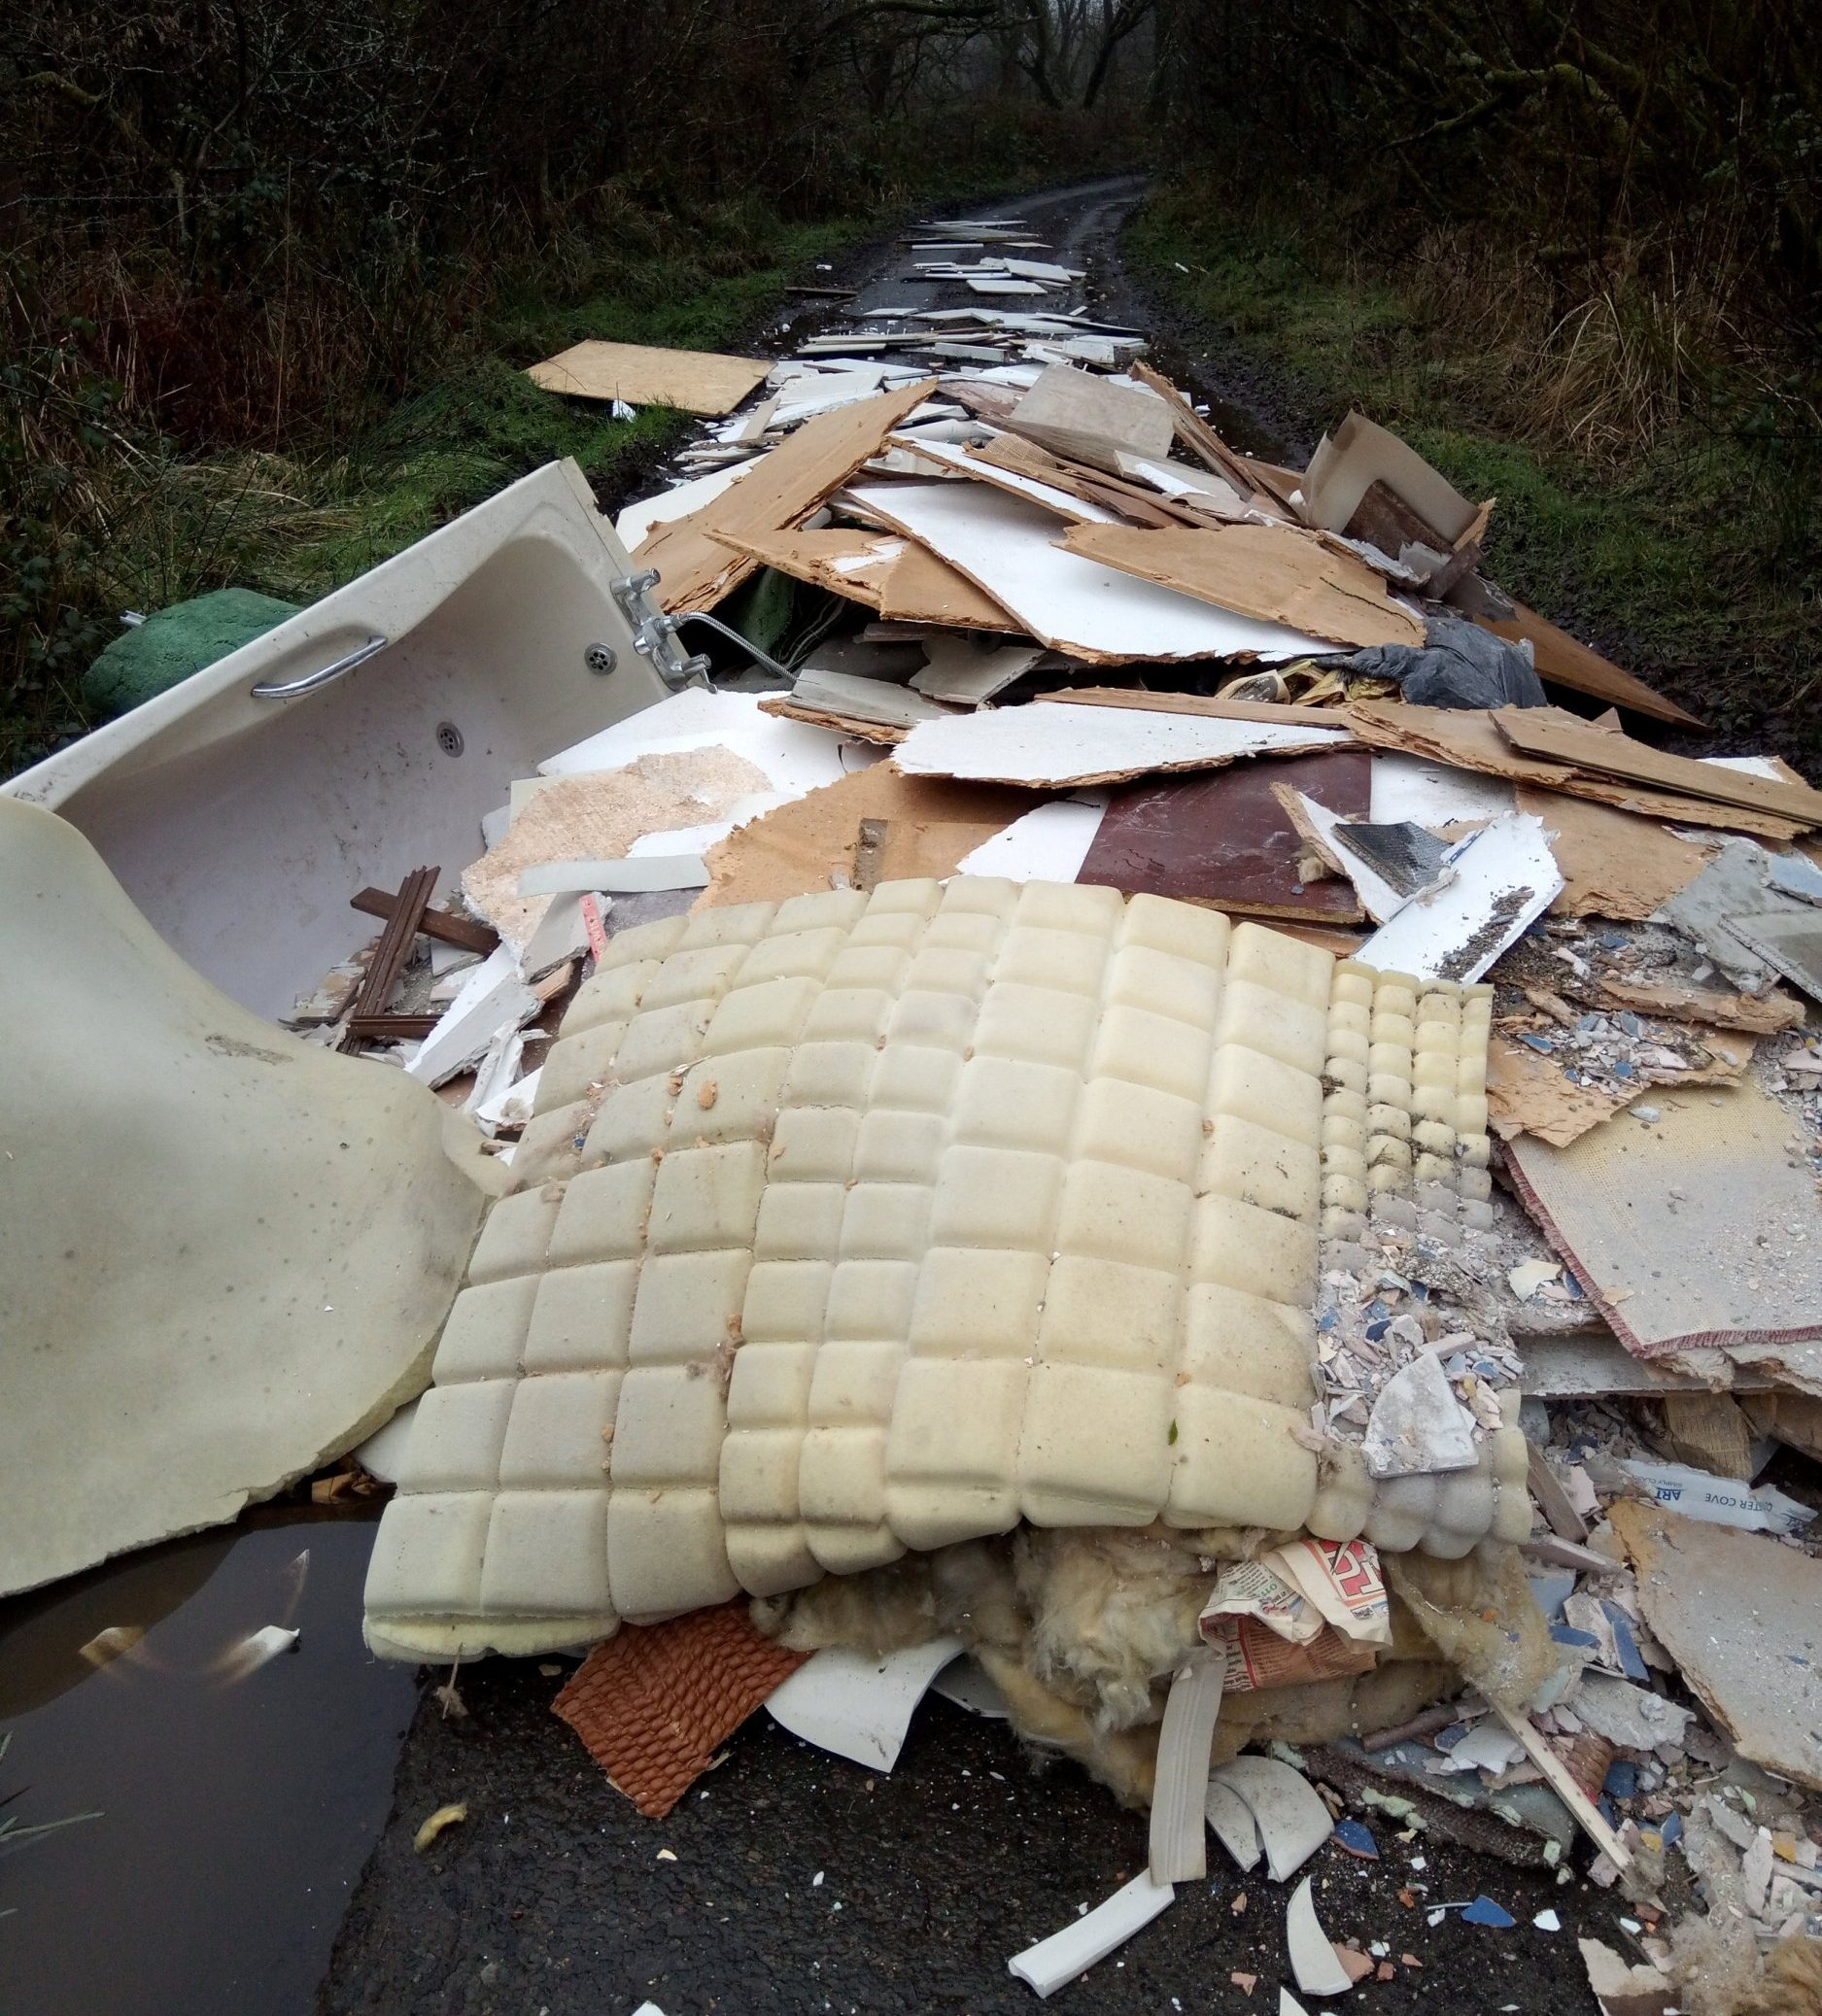 A road in road in Roche, Cornwall completely blocked by fly tipped rubbish. See SWNS copy SWPLfly: These shocking images show a country lane completely blocked by rubbish left by a fly-tipper. The debris, including insulation and an old bathtub, appears to be from a house renovation. But instead of taking the industrial waste to the tip, where there would be a charge to dispose of it, the careless owner dumped it in a country lane. Shocked residents shared a picture of the waste on Facebook, saying that the road in Roche, Cornwall, was completely blocked.